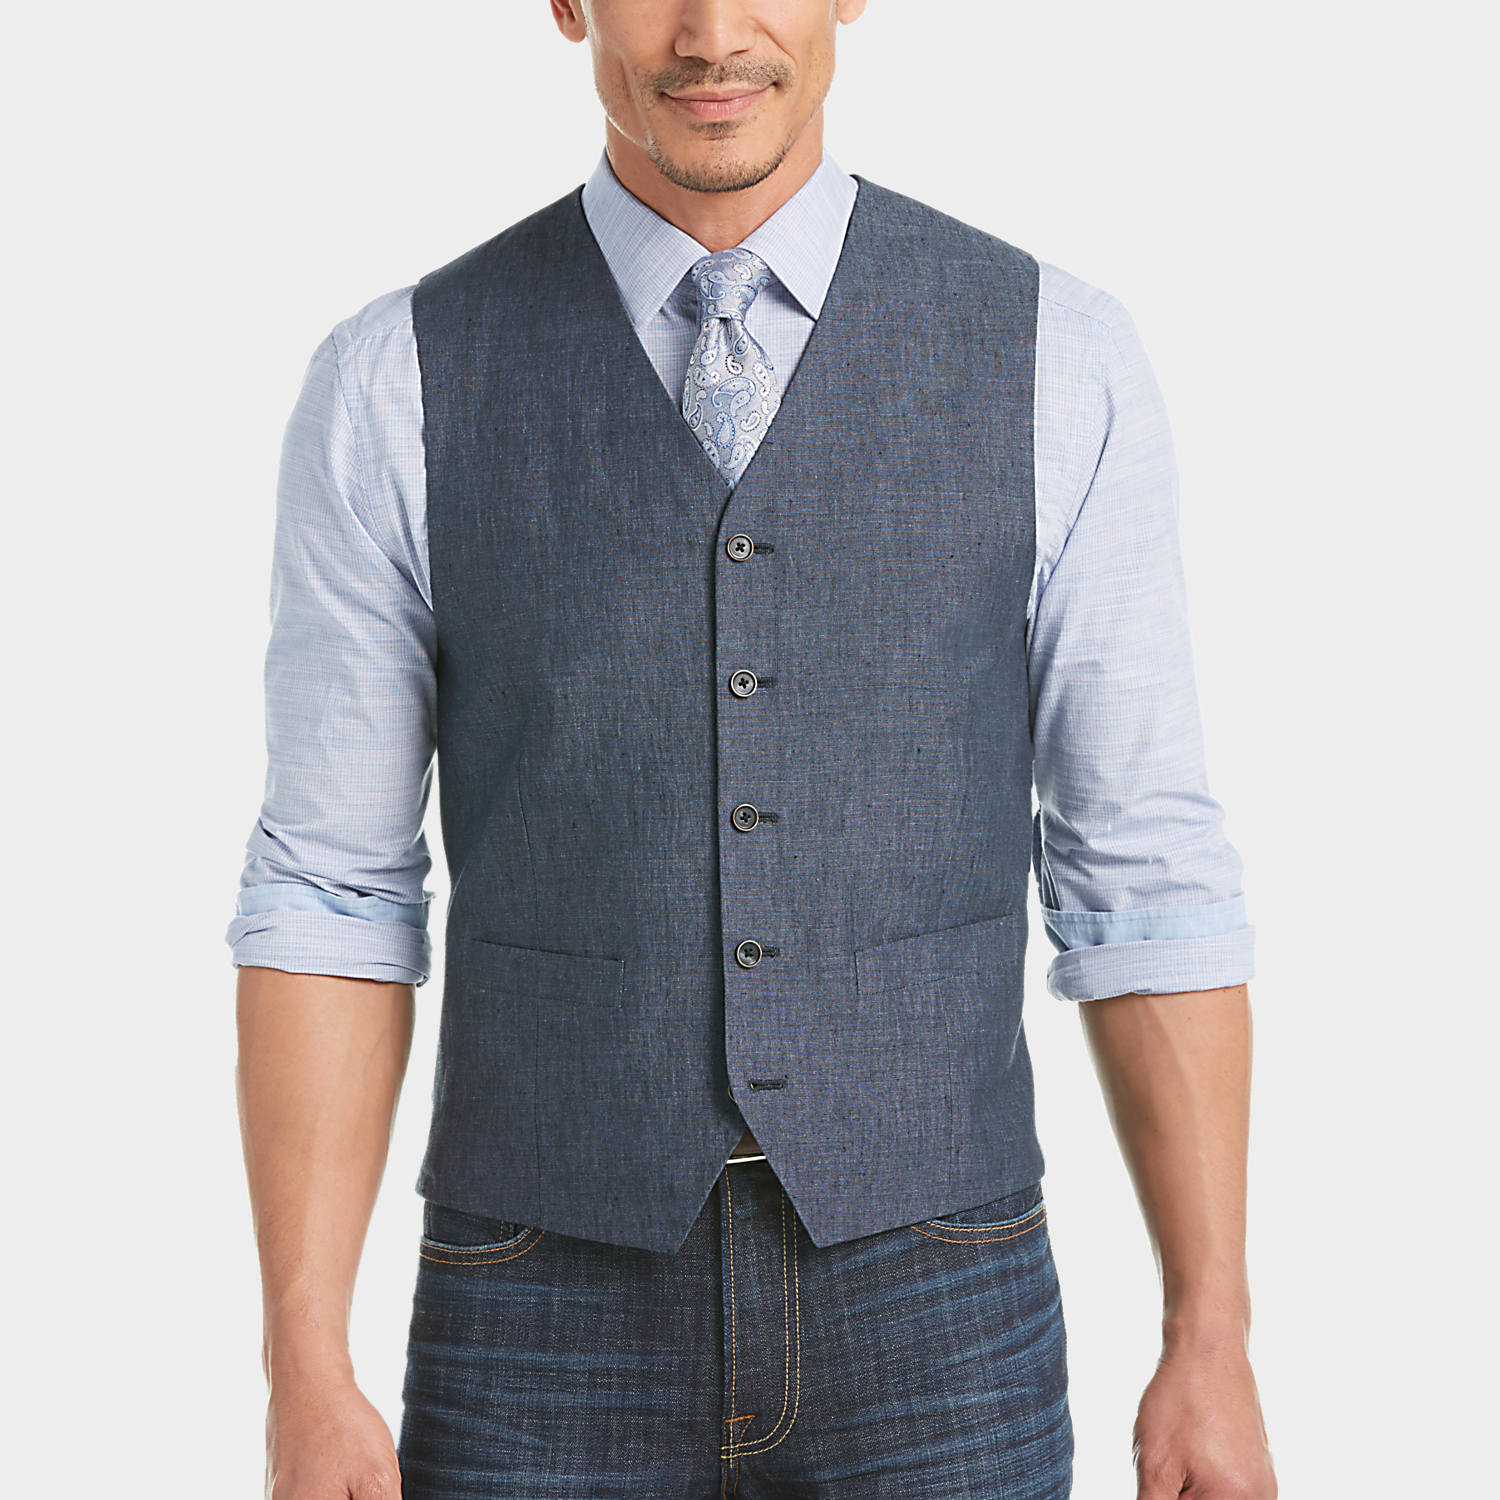 vest for men see stylist-approved outfits for this item jiewops